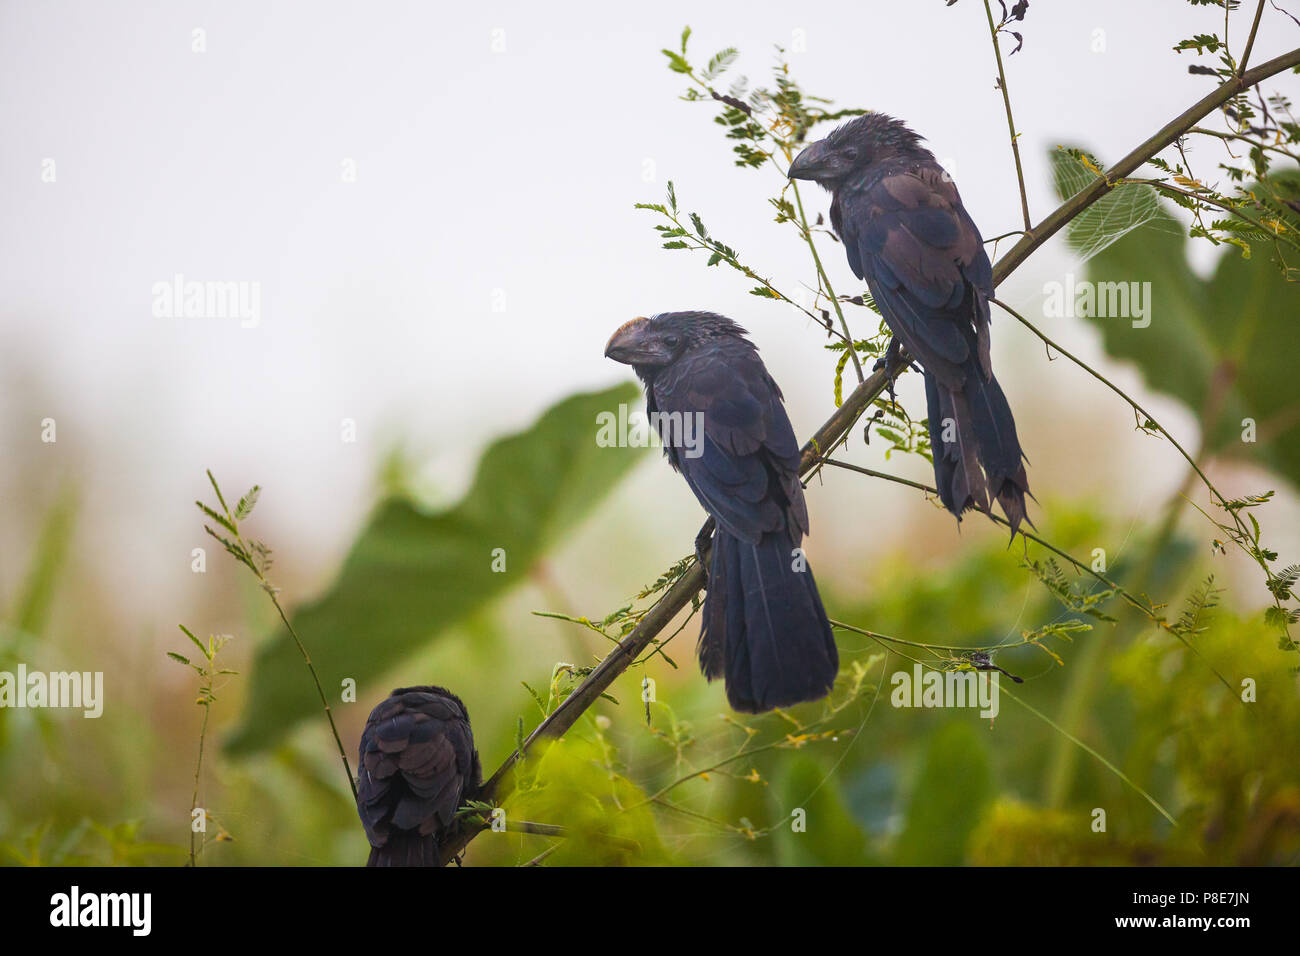 Smooth-billed Ani, Crotophaga ani, on a branch in Rio Chagres, Republic of Panama. - Stock Image